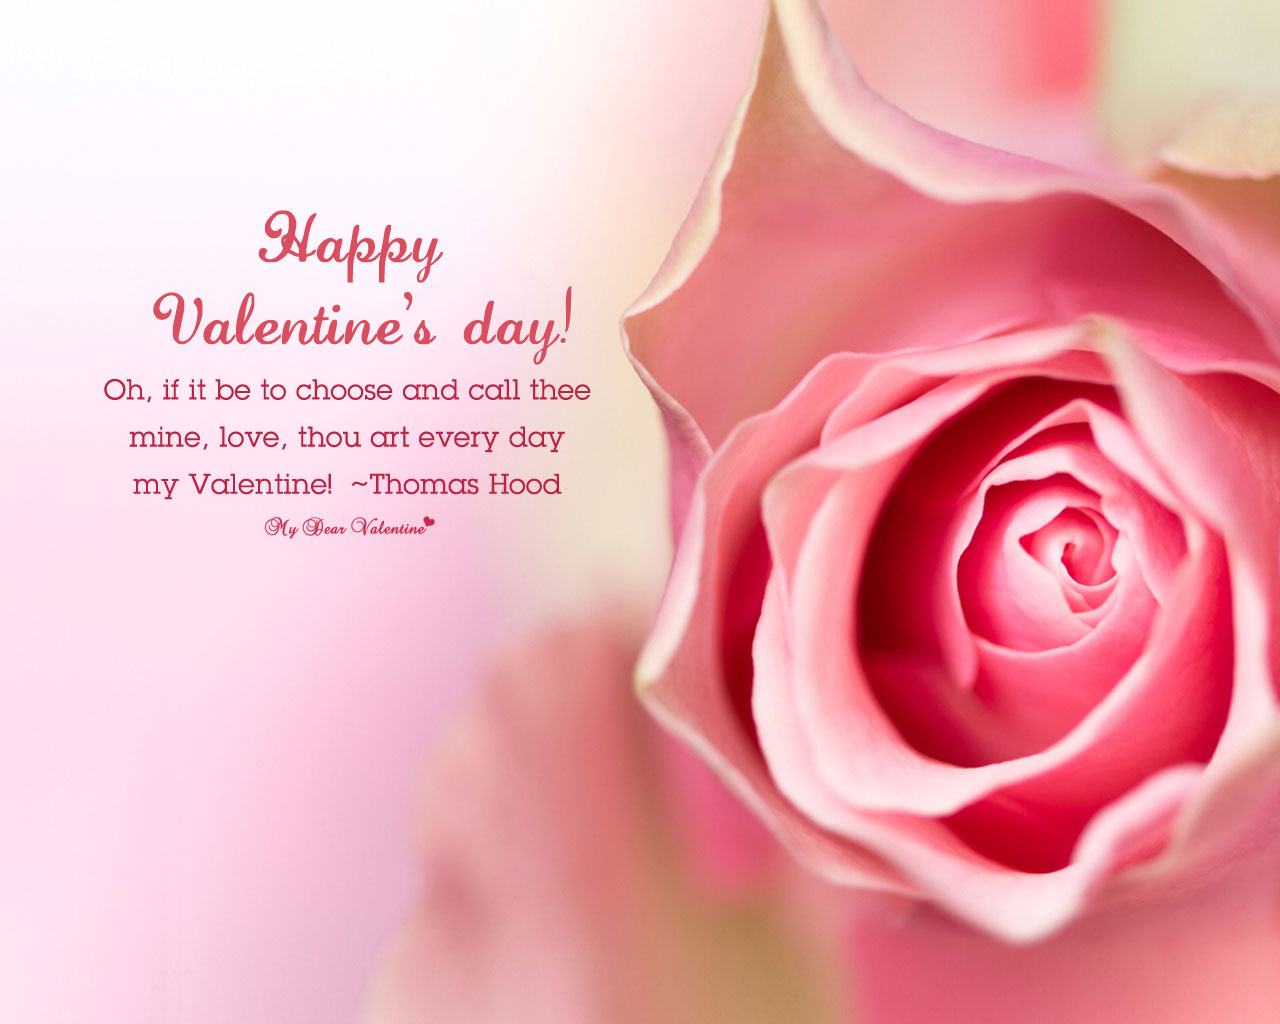 valentine's day quotes - photo #38